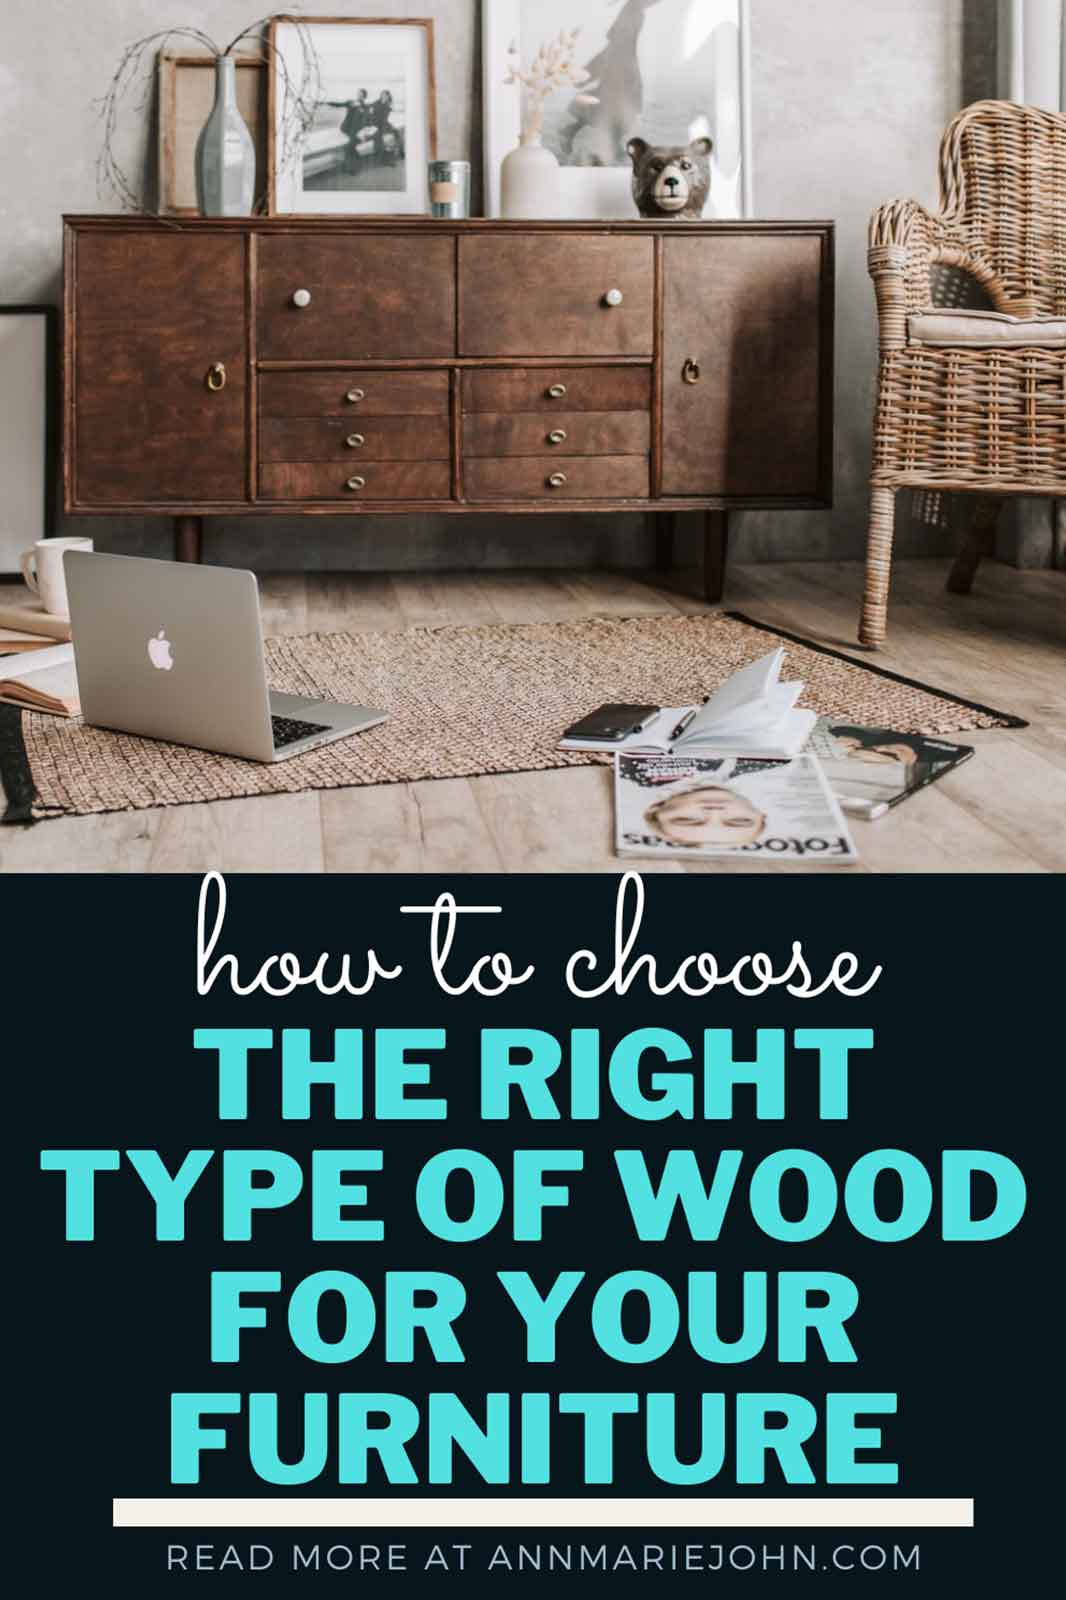 How to Choose the Right Type of Wood for Your Furniture